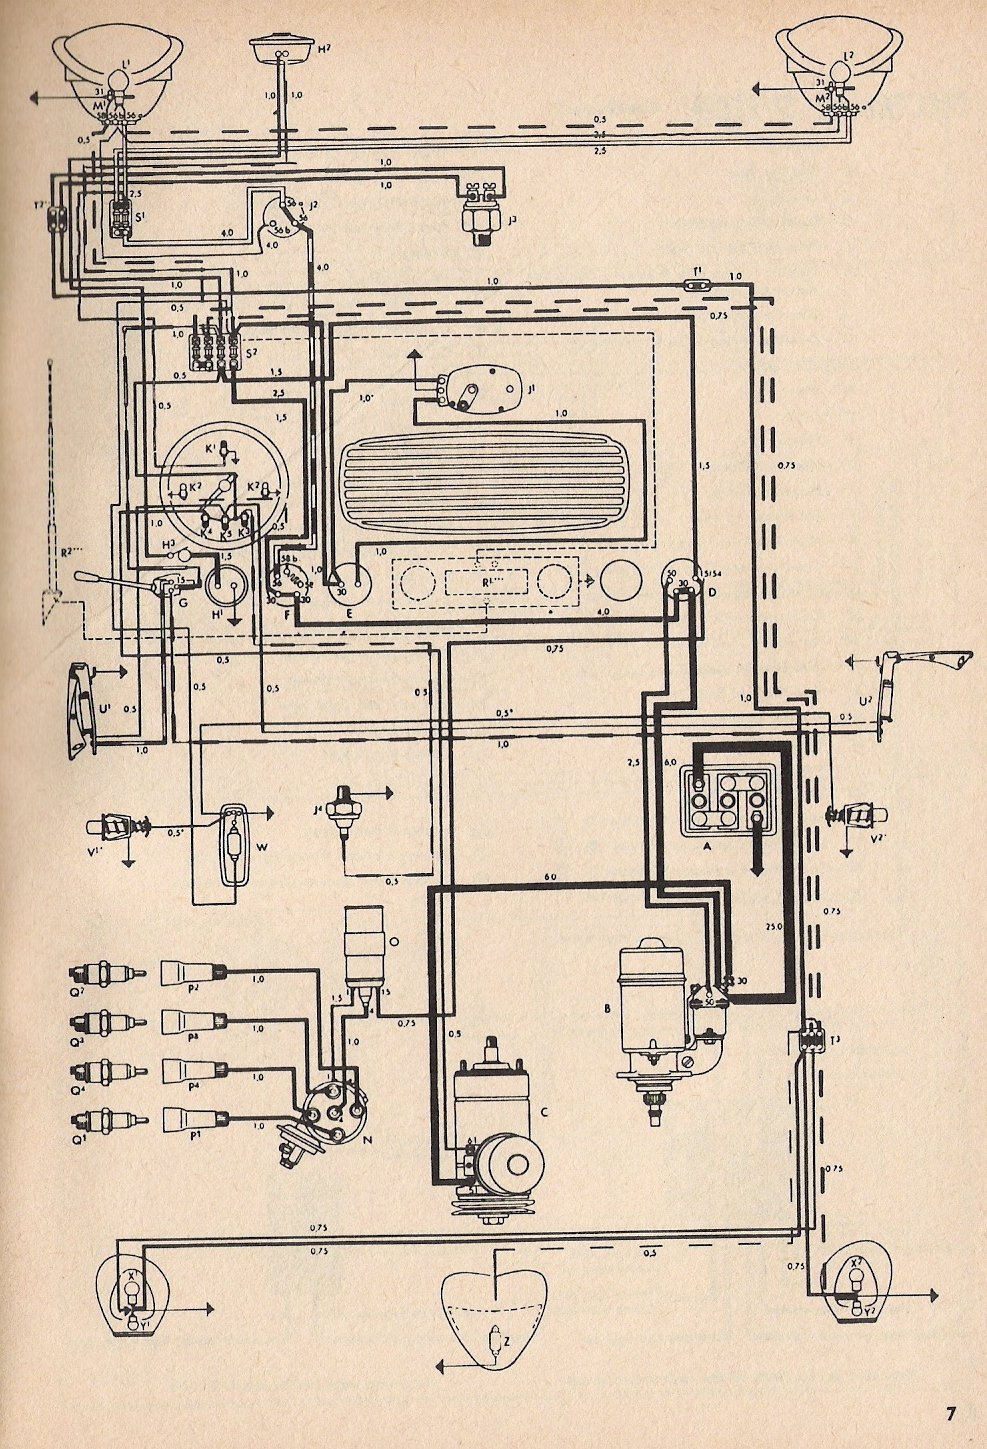 bug_54 thesamba com type 1 wiring diagrams 1971 vw bus wiring diagram at love-stories.co